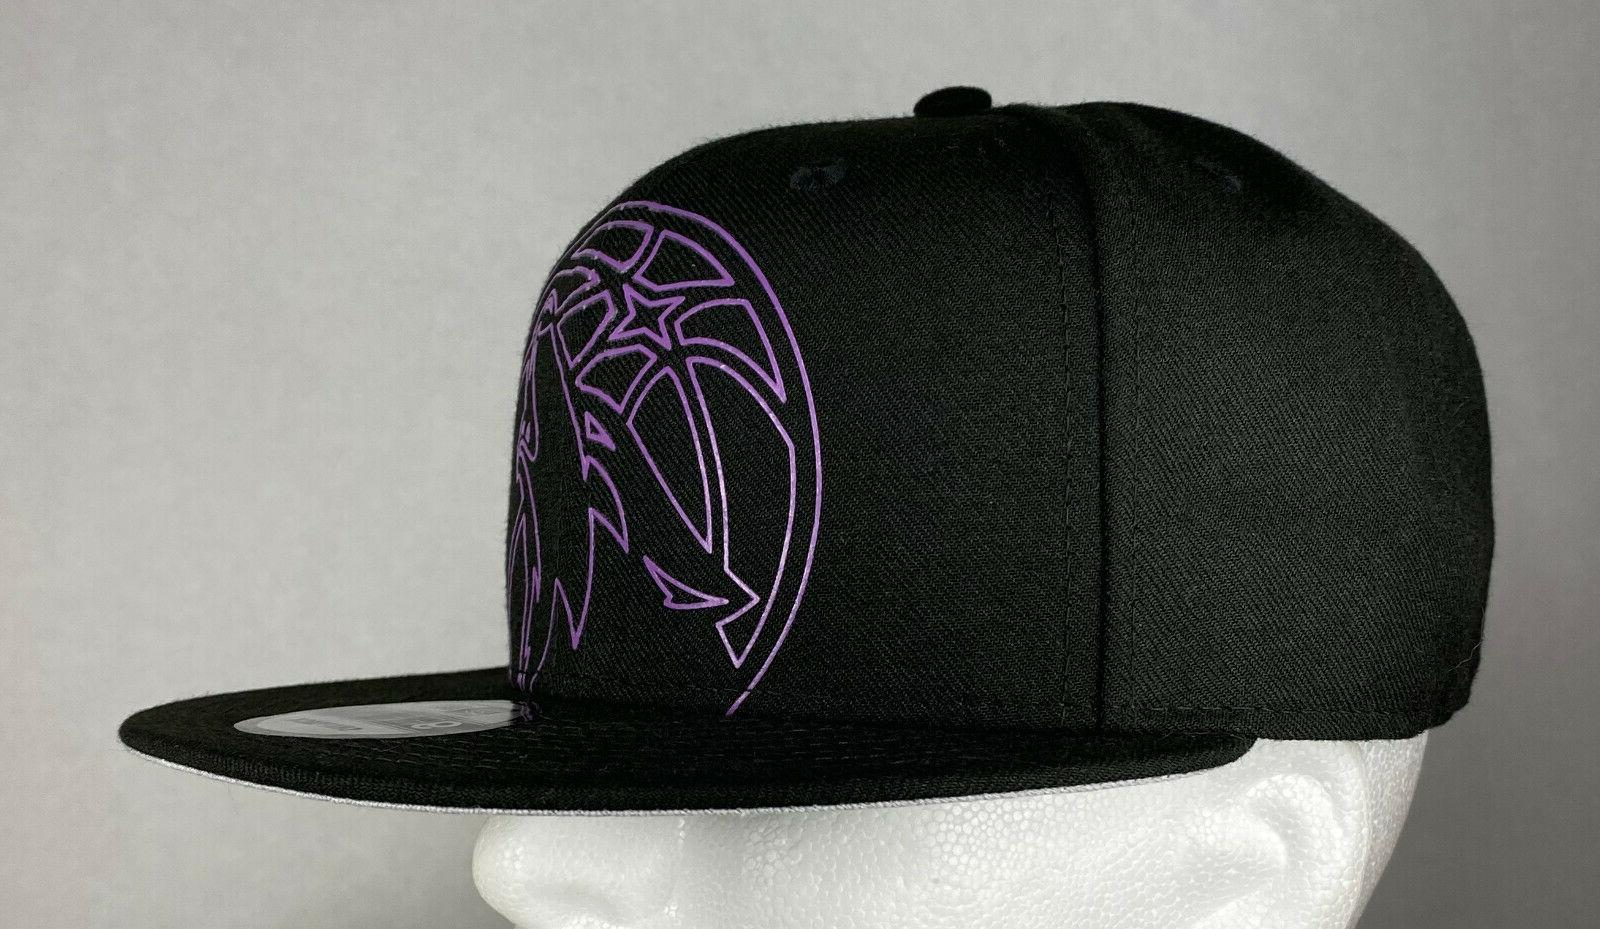 Timberwolves It Up 9FIFTY Snapback Hat,